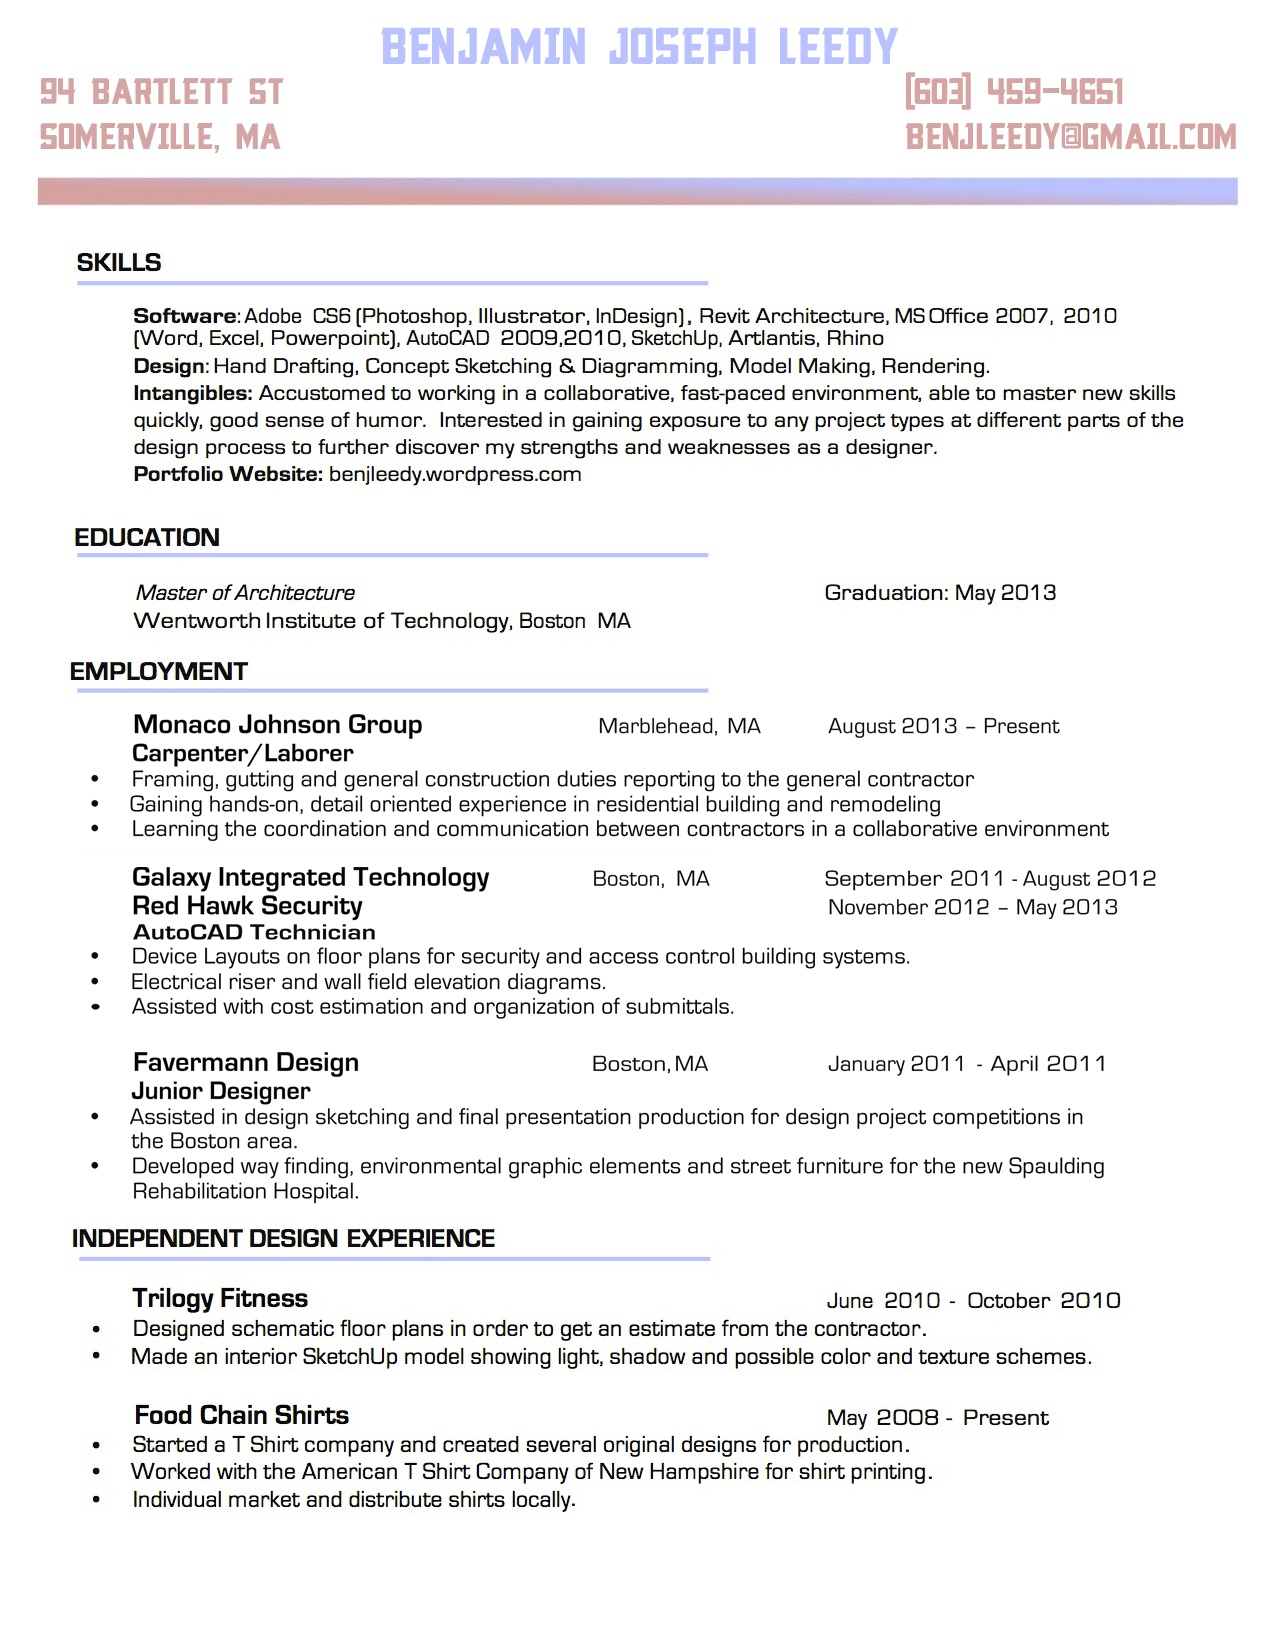 Other Name Of Resume Bar Opus Help With Writing English Essays Bar Opus Where